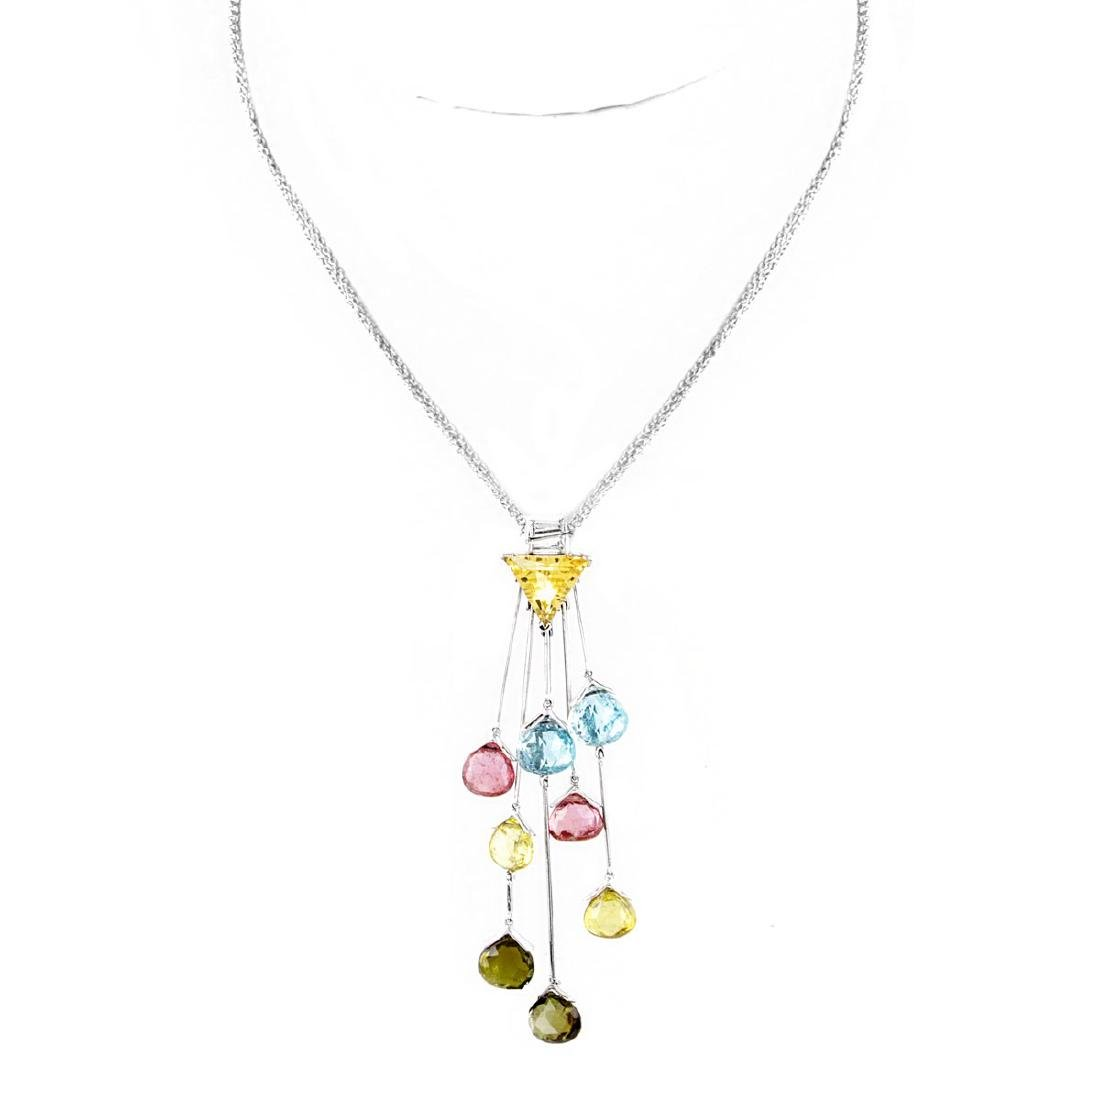 Contemporary Multi Gemstone and 18K Gold Necklace - 2